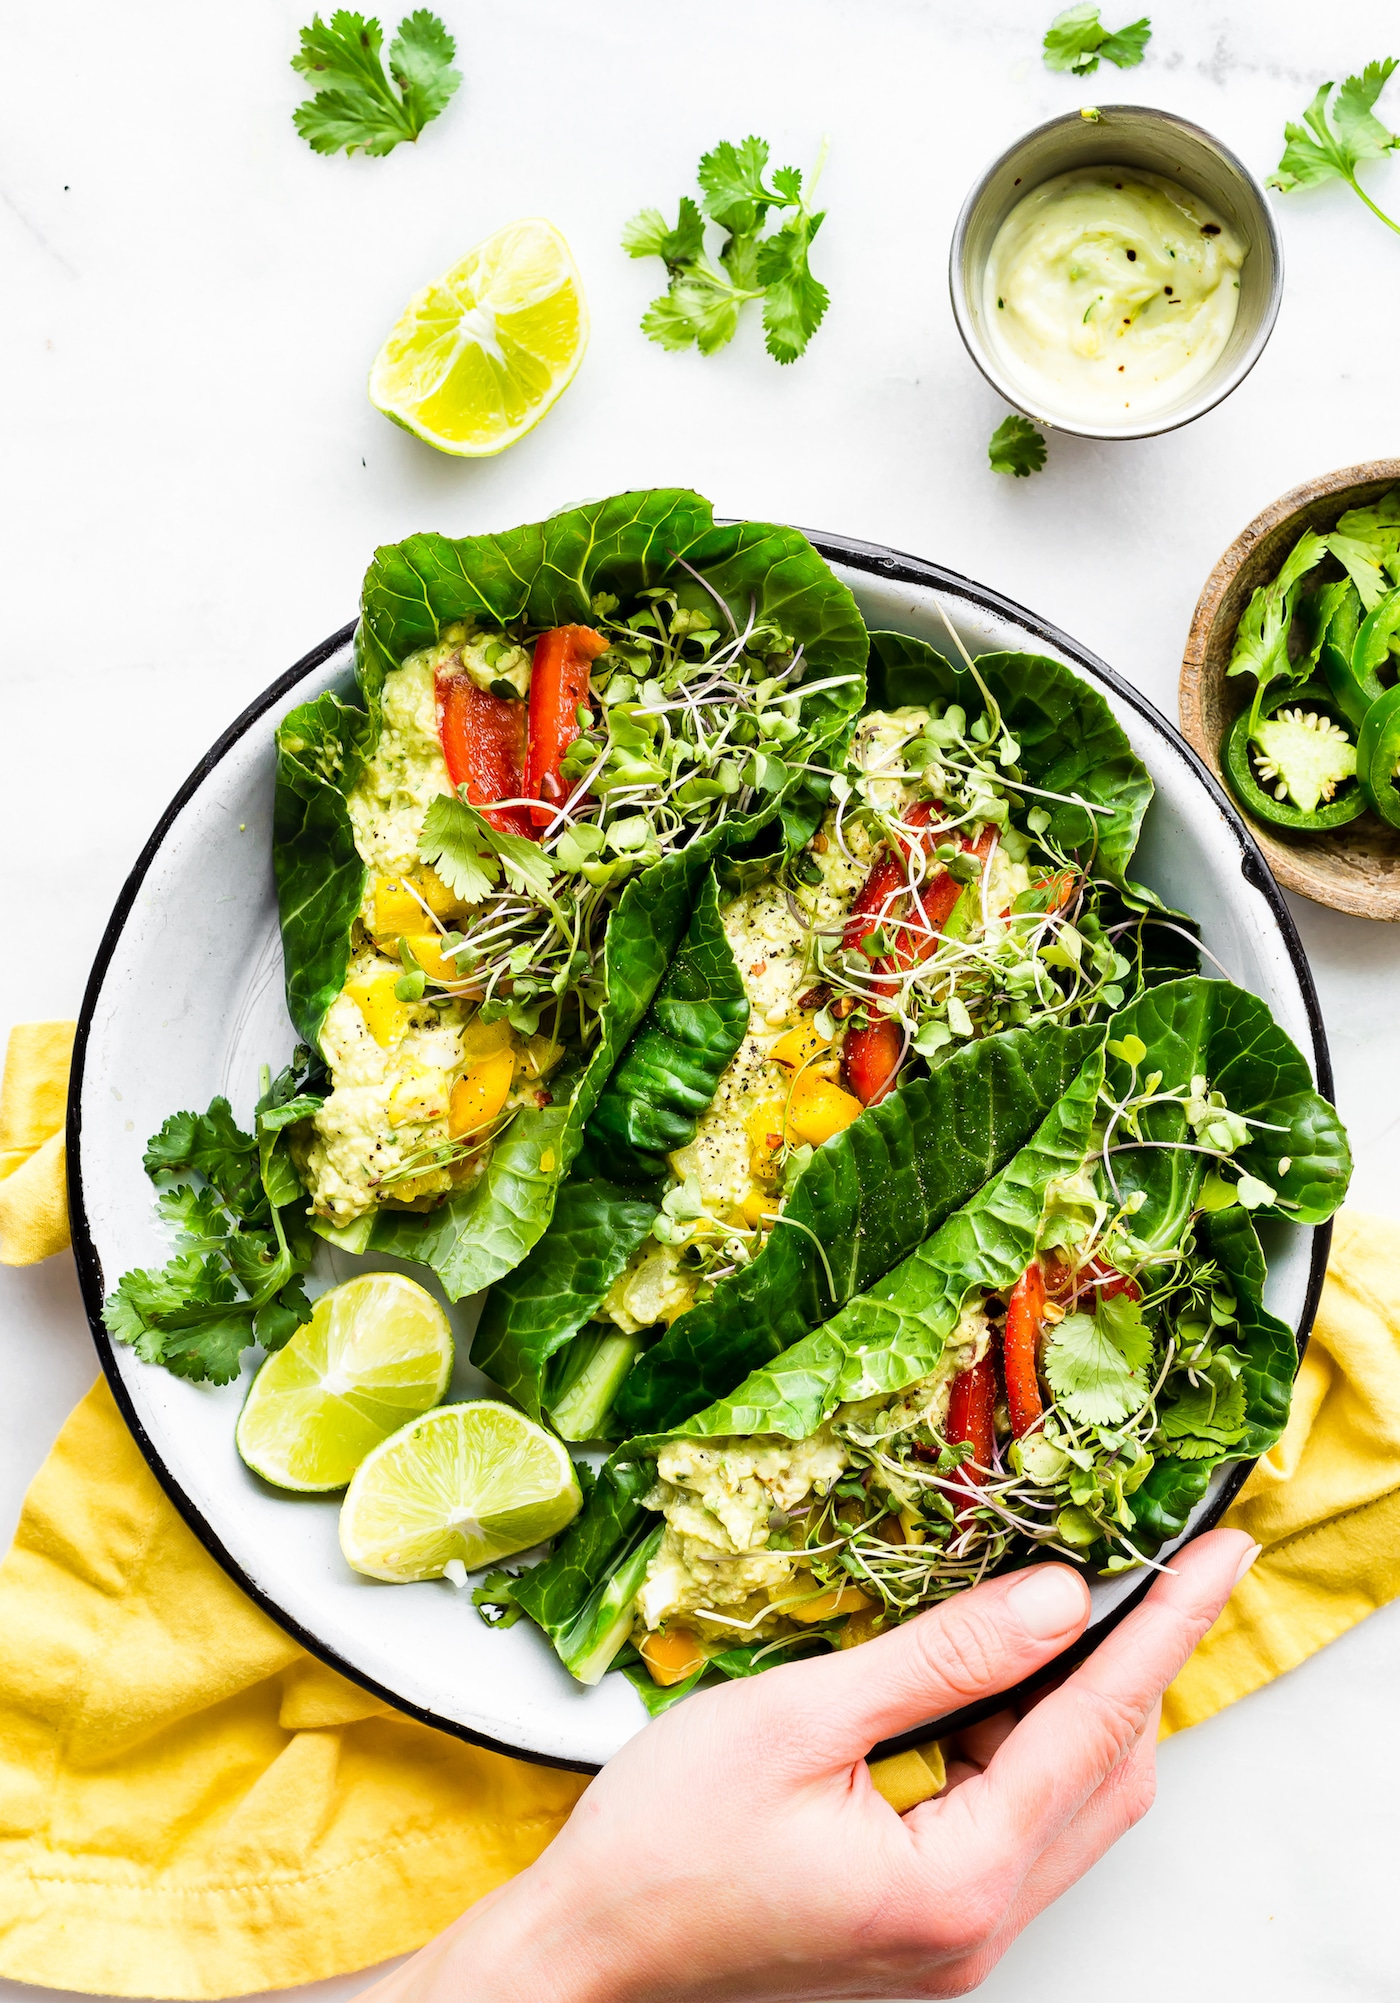 Spice up lunch with these Paleo MEXICAN AVOCADO EGG SALAD COLLARD GREEN WRAPS! A quick veggie packed lunch!